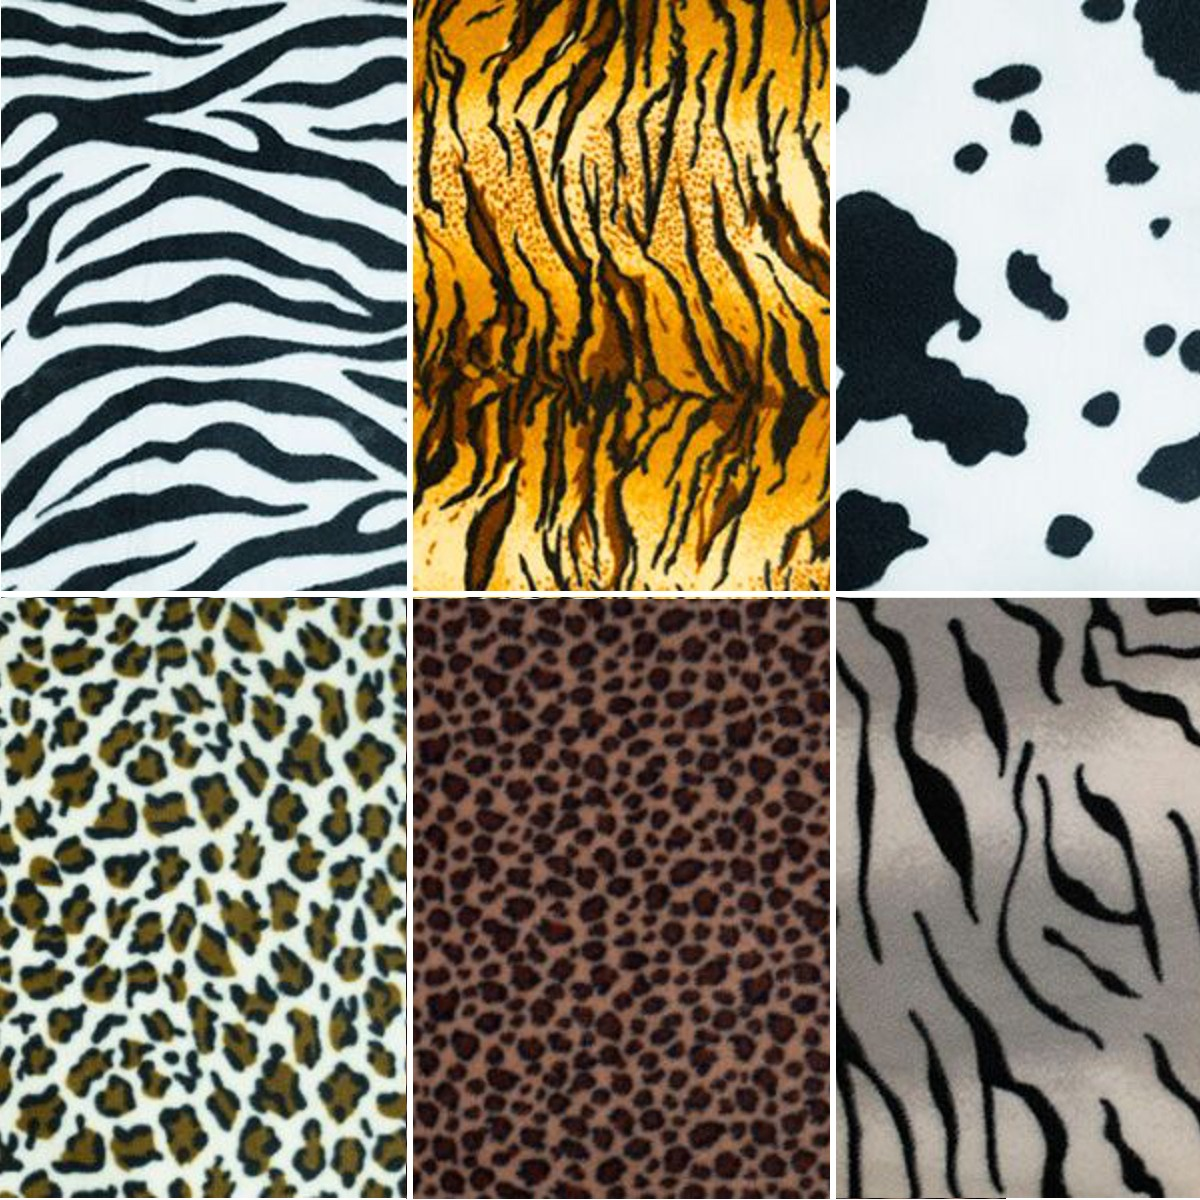 Zebra Polar Fleece Anti Pil Fabric Animal Skin Print Zebra Cow Leopard Tiger Blanket